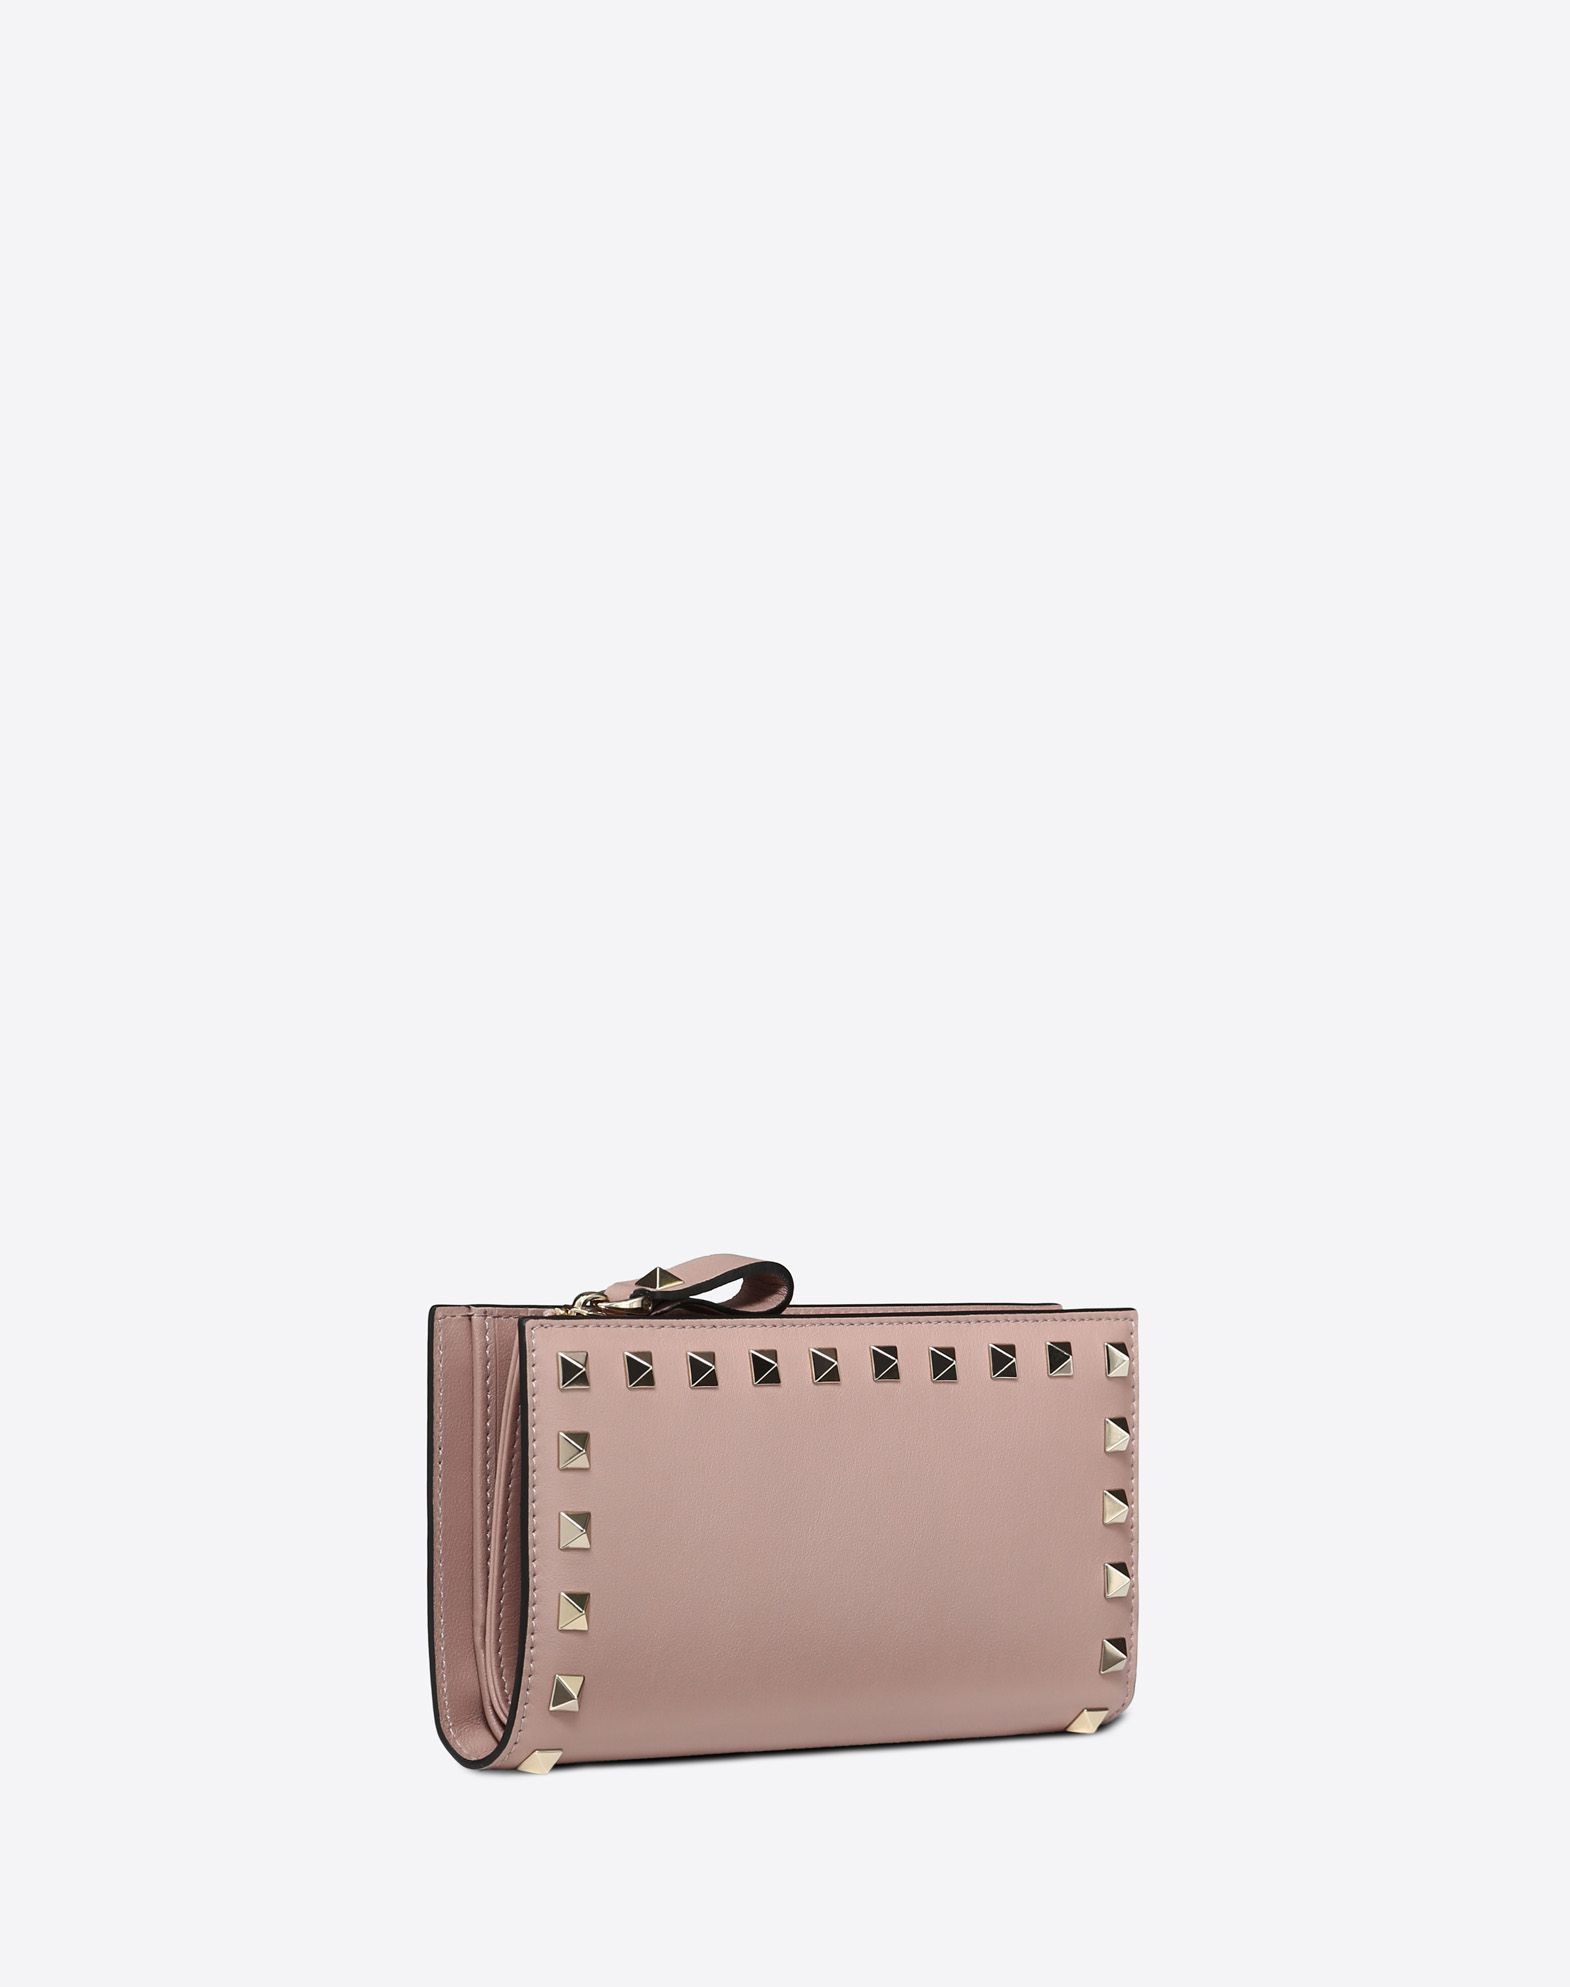 VIDA Leather Statement Clutch - alicia by VIDA